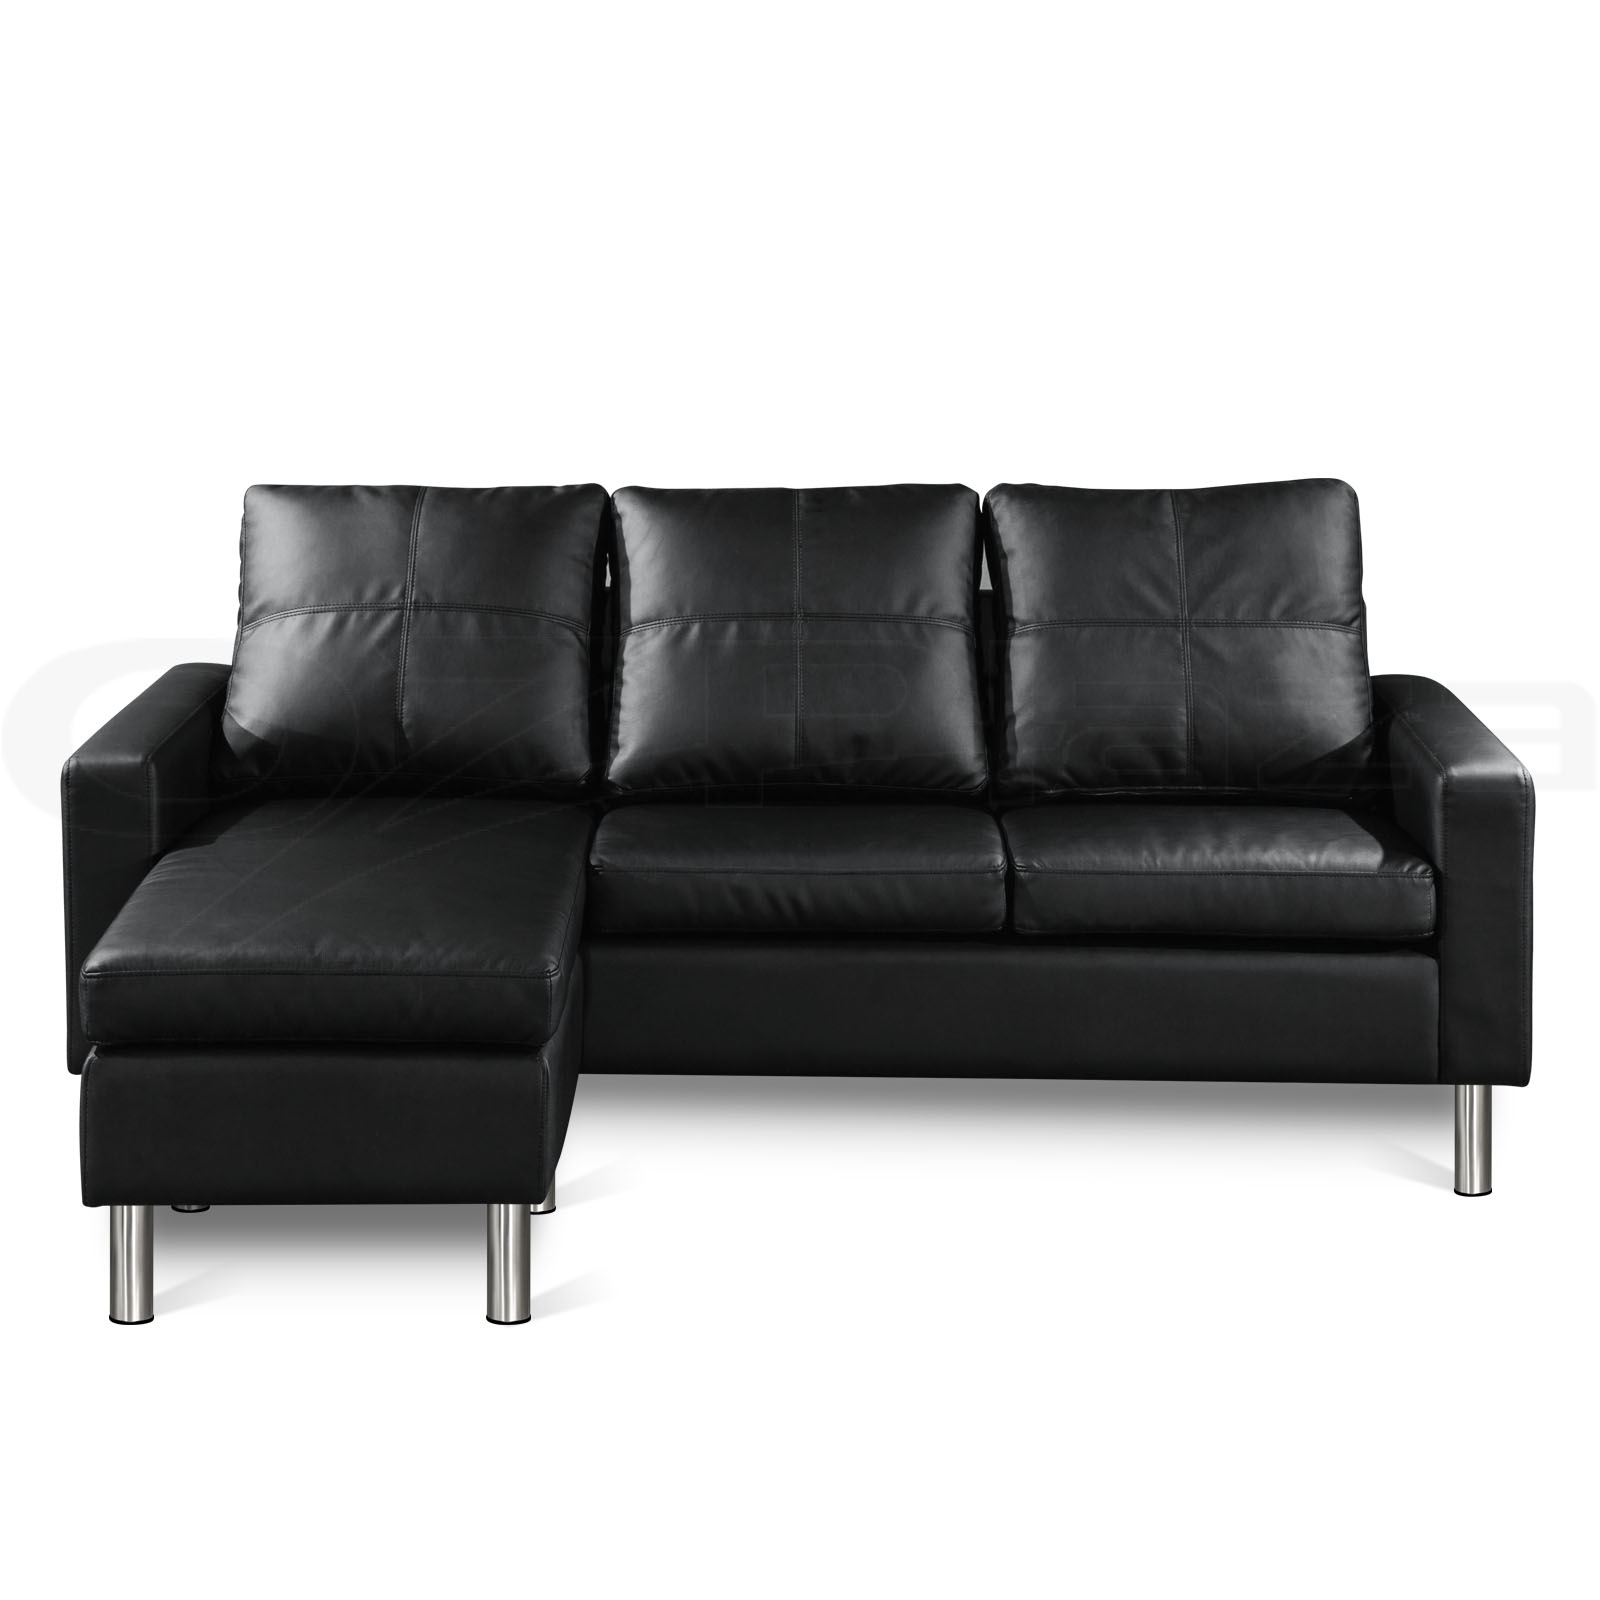 Pu leather sofa modular lounge suite chaise double futon for Black leather chaise lounge sofa